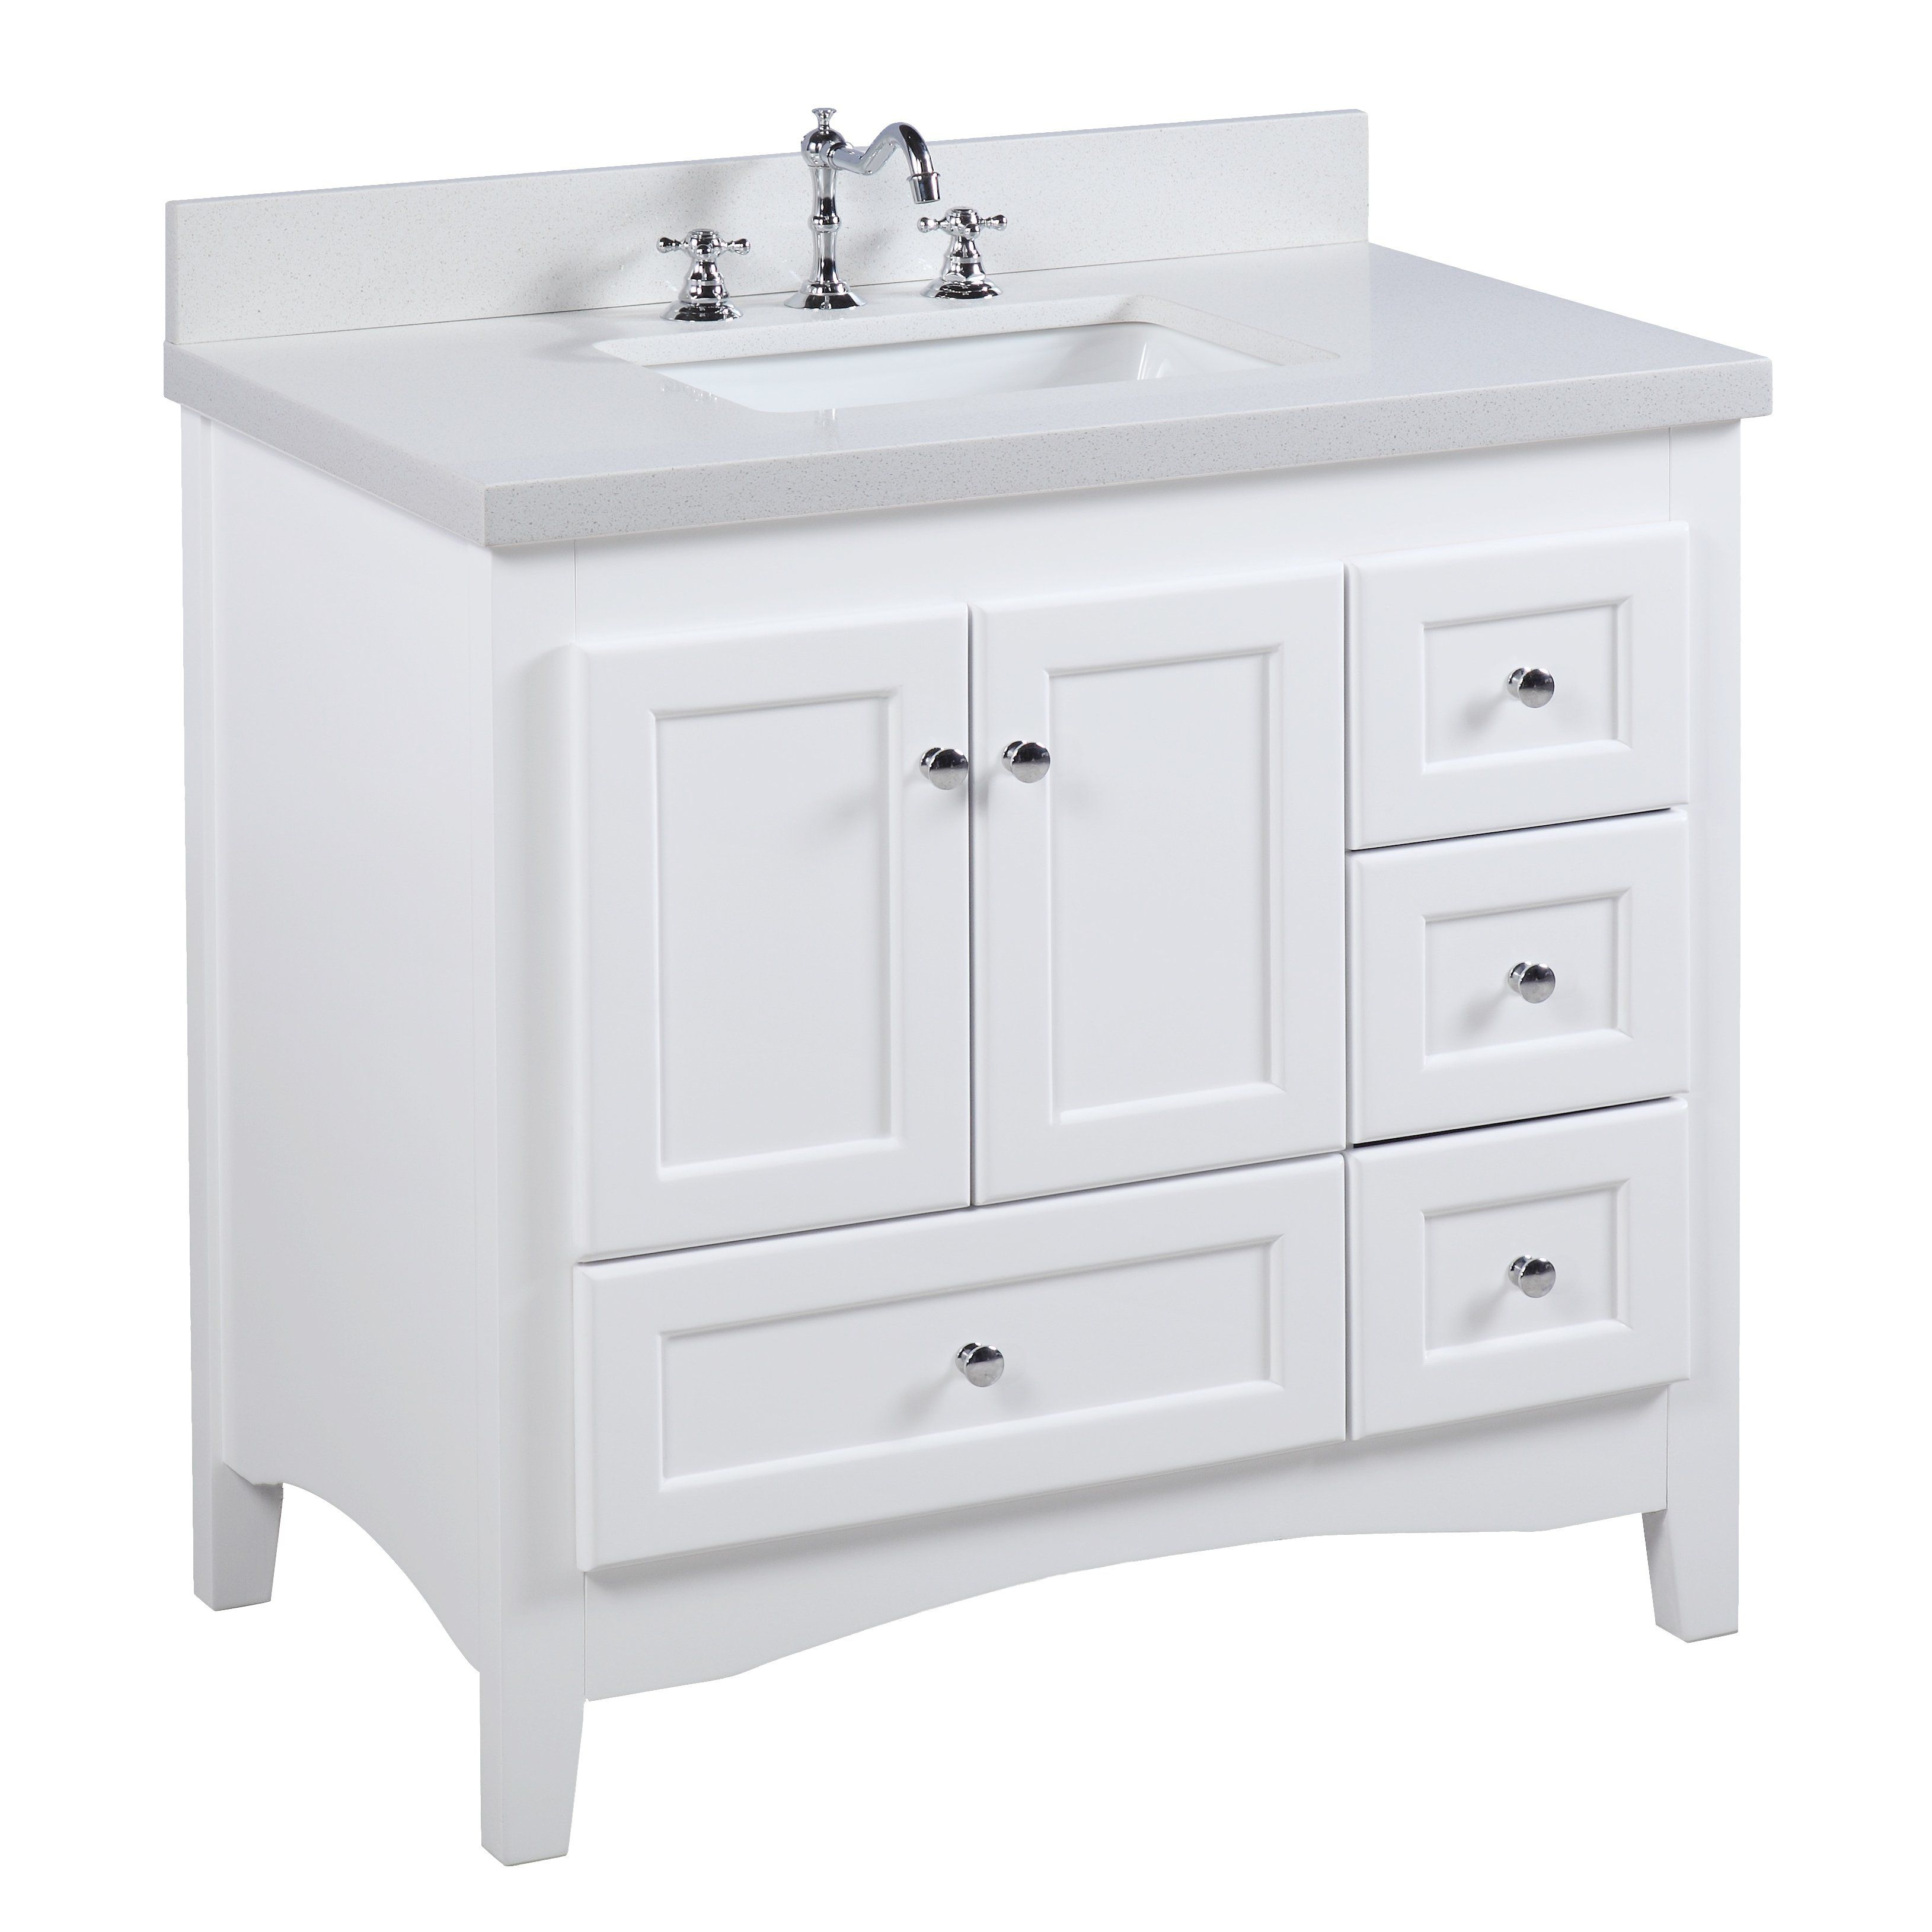 Abbey 36 Inch Vanity Quartz White With Images Single